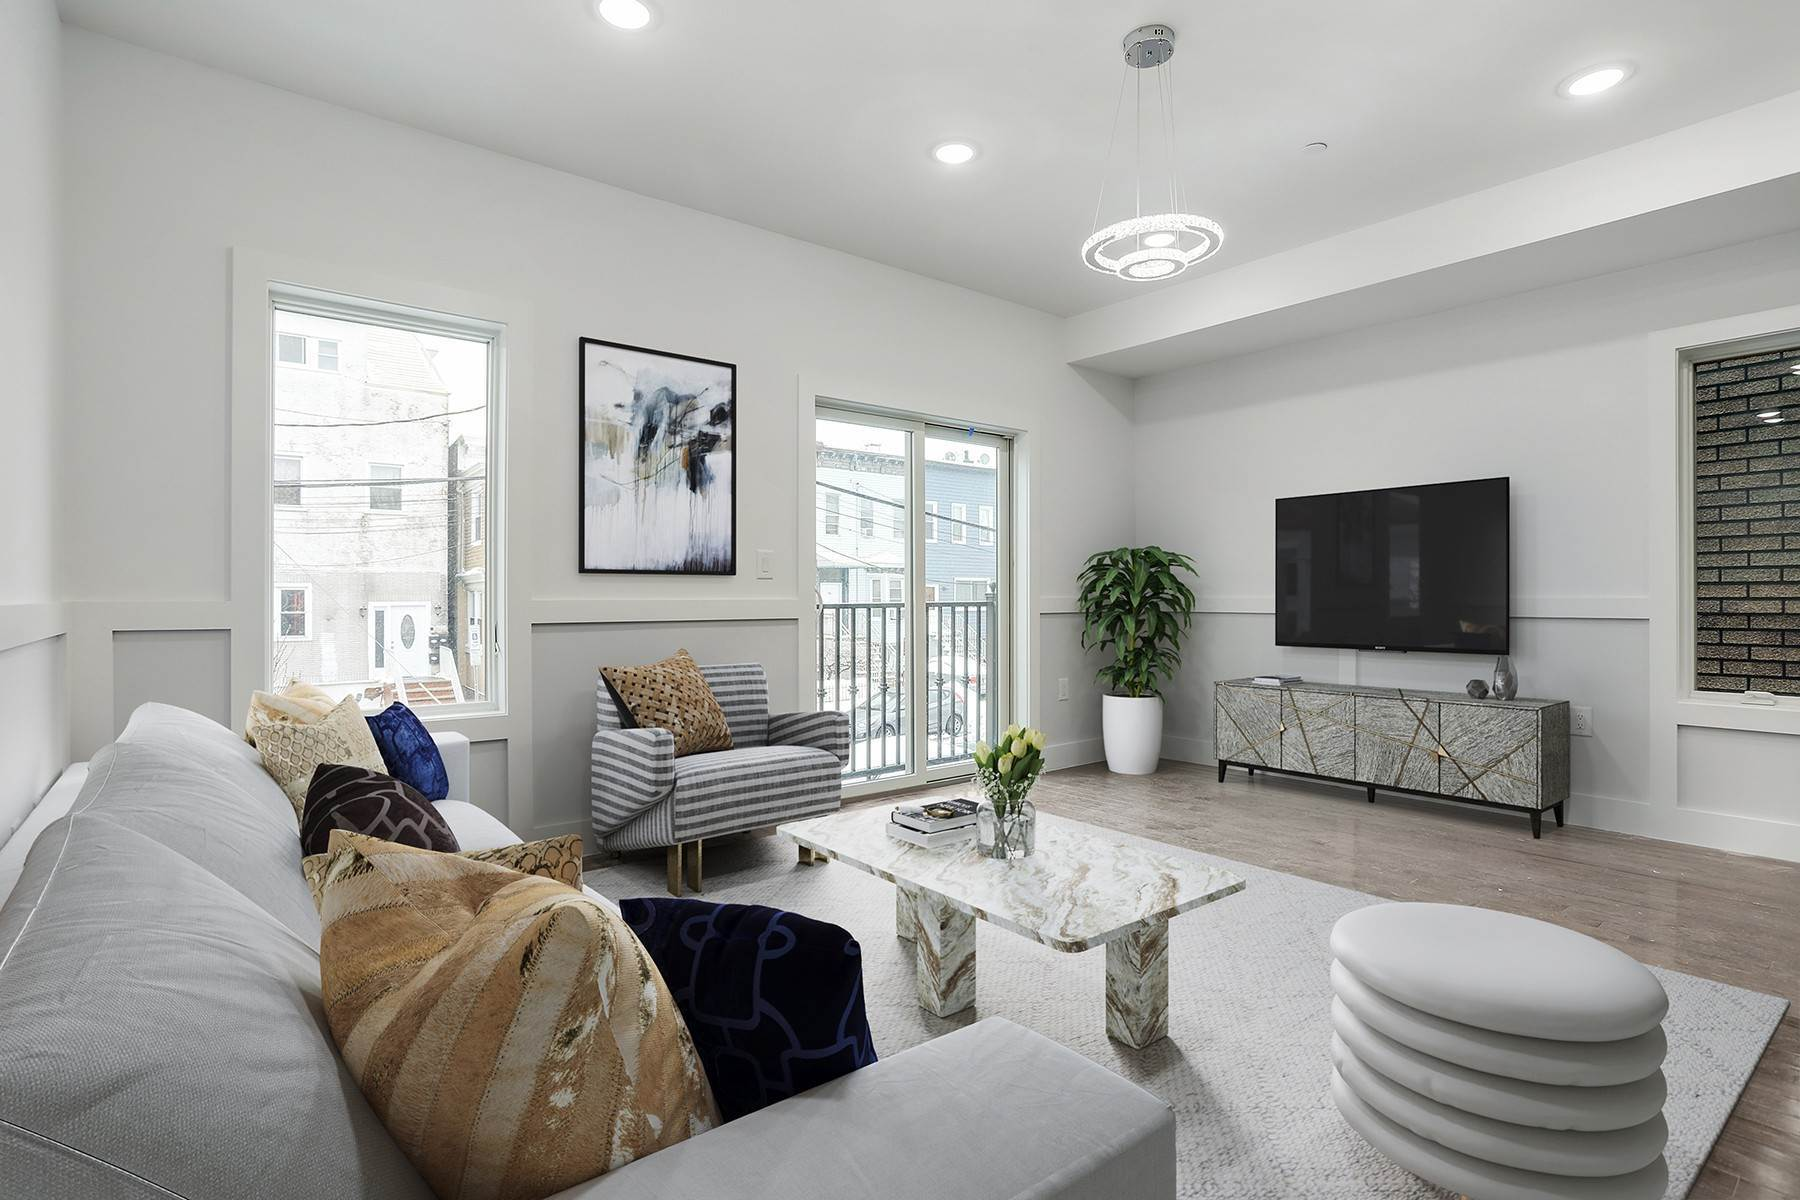 Condominiums for Sale at Welcome home to this brand new constructed 2 bed/ 1.5 bath condo in Jersey City. 66 Poplar Street, Unit 2 Jersey City, New Jersey 07307 United States